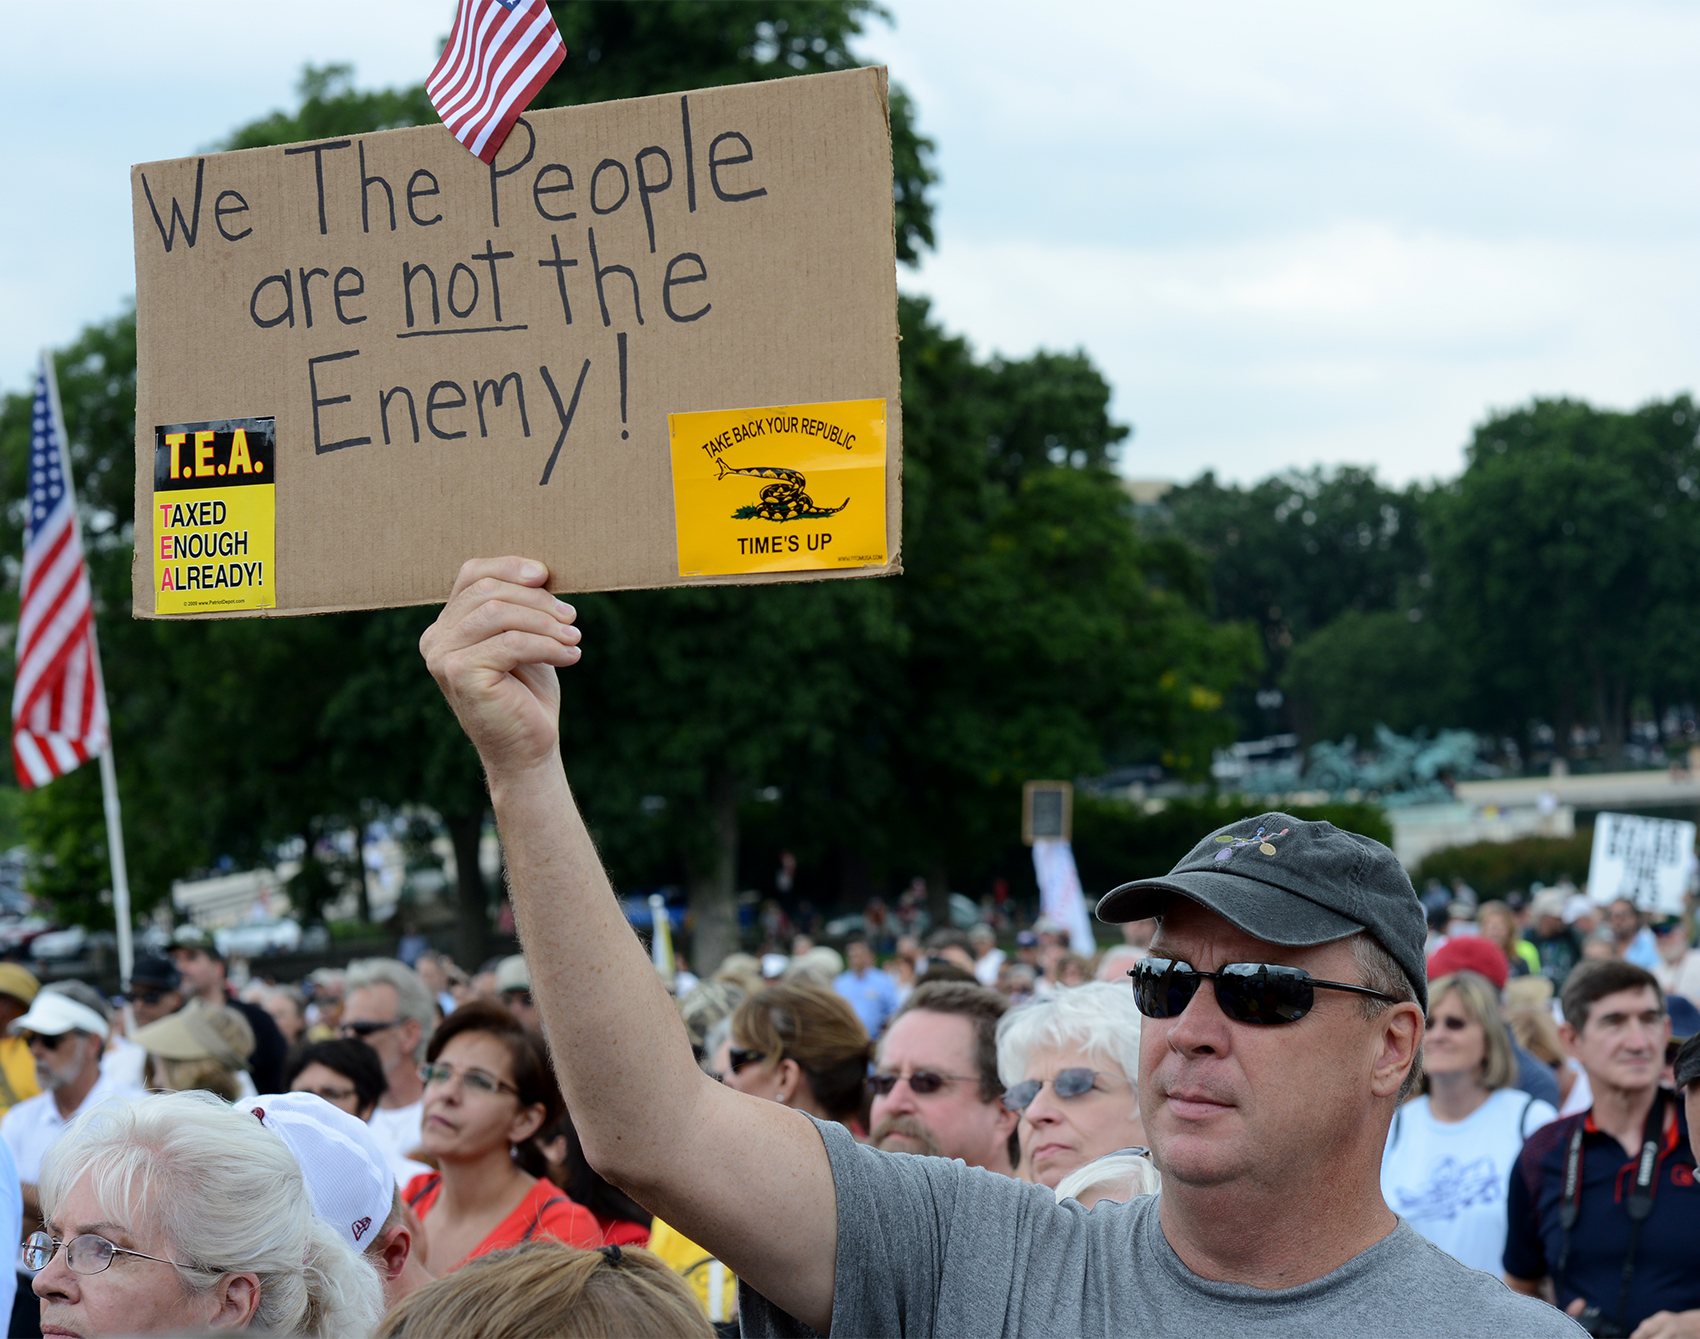 """A male Tea party supporter holding up a sign that says """"We the people are not the enemy"""" at a Tea Party IRS Rally. Photo by Stephen Melkisethian"""